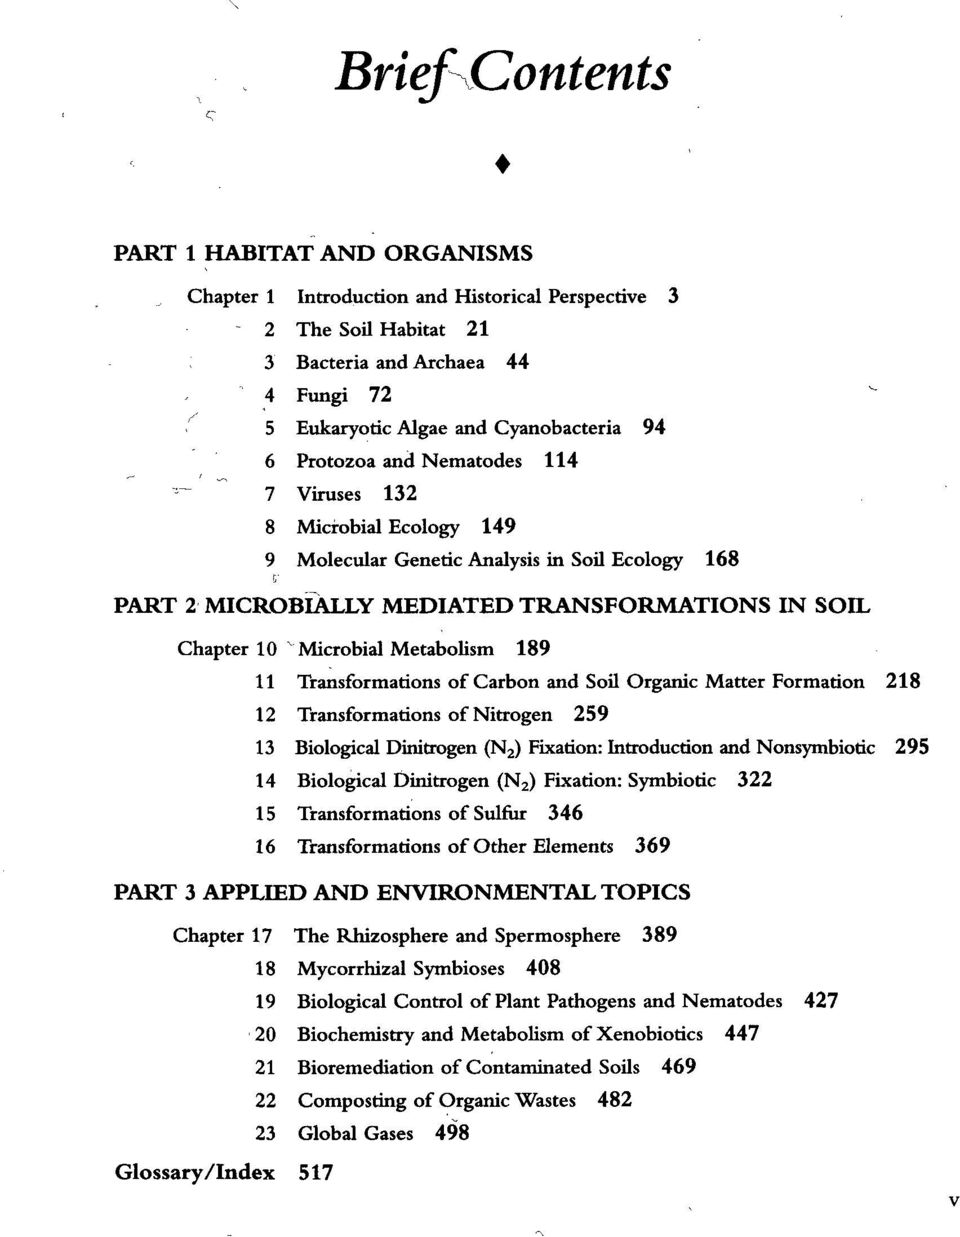 189 11 Transformations of Carbon and Soil Organic Matter Formation 218 12 Transformations of Nitrogen 259 13 Biological Dinitrogen (N 2 ) Fixation: Introduction and Nonsymbiotic 295 14 Biological